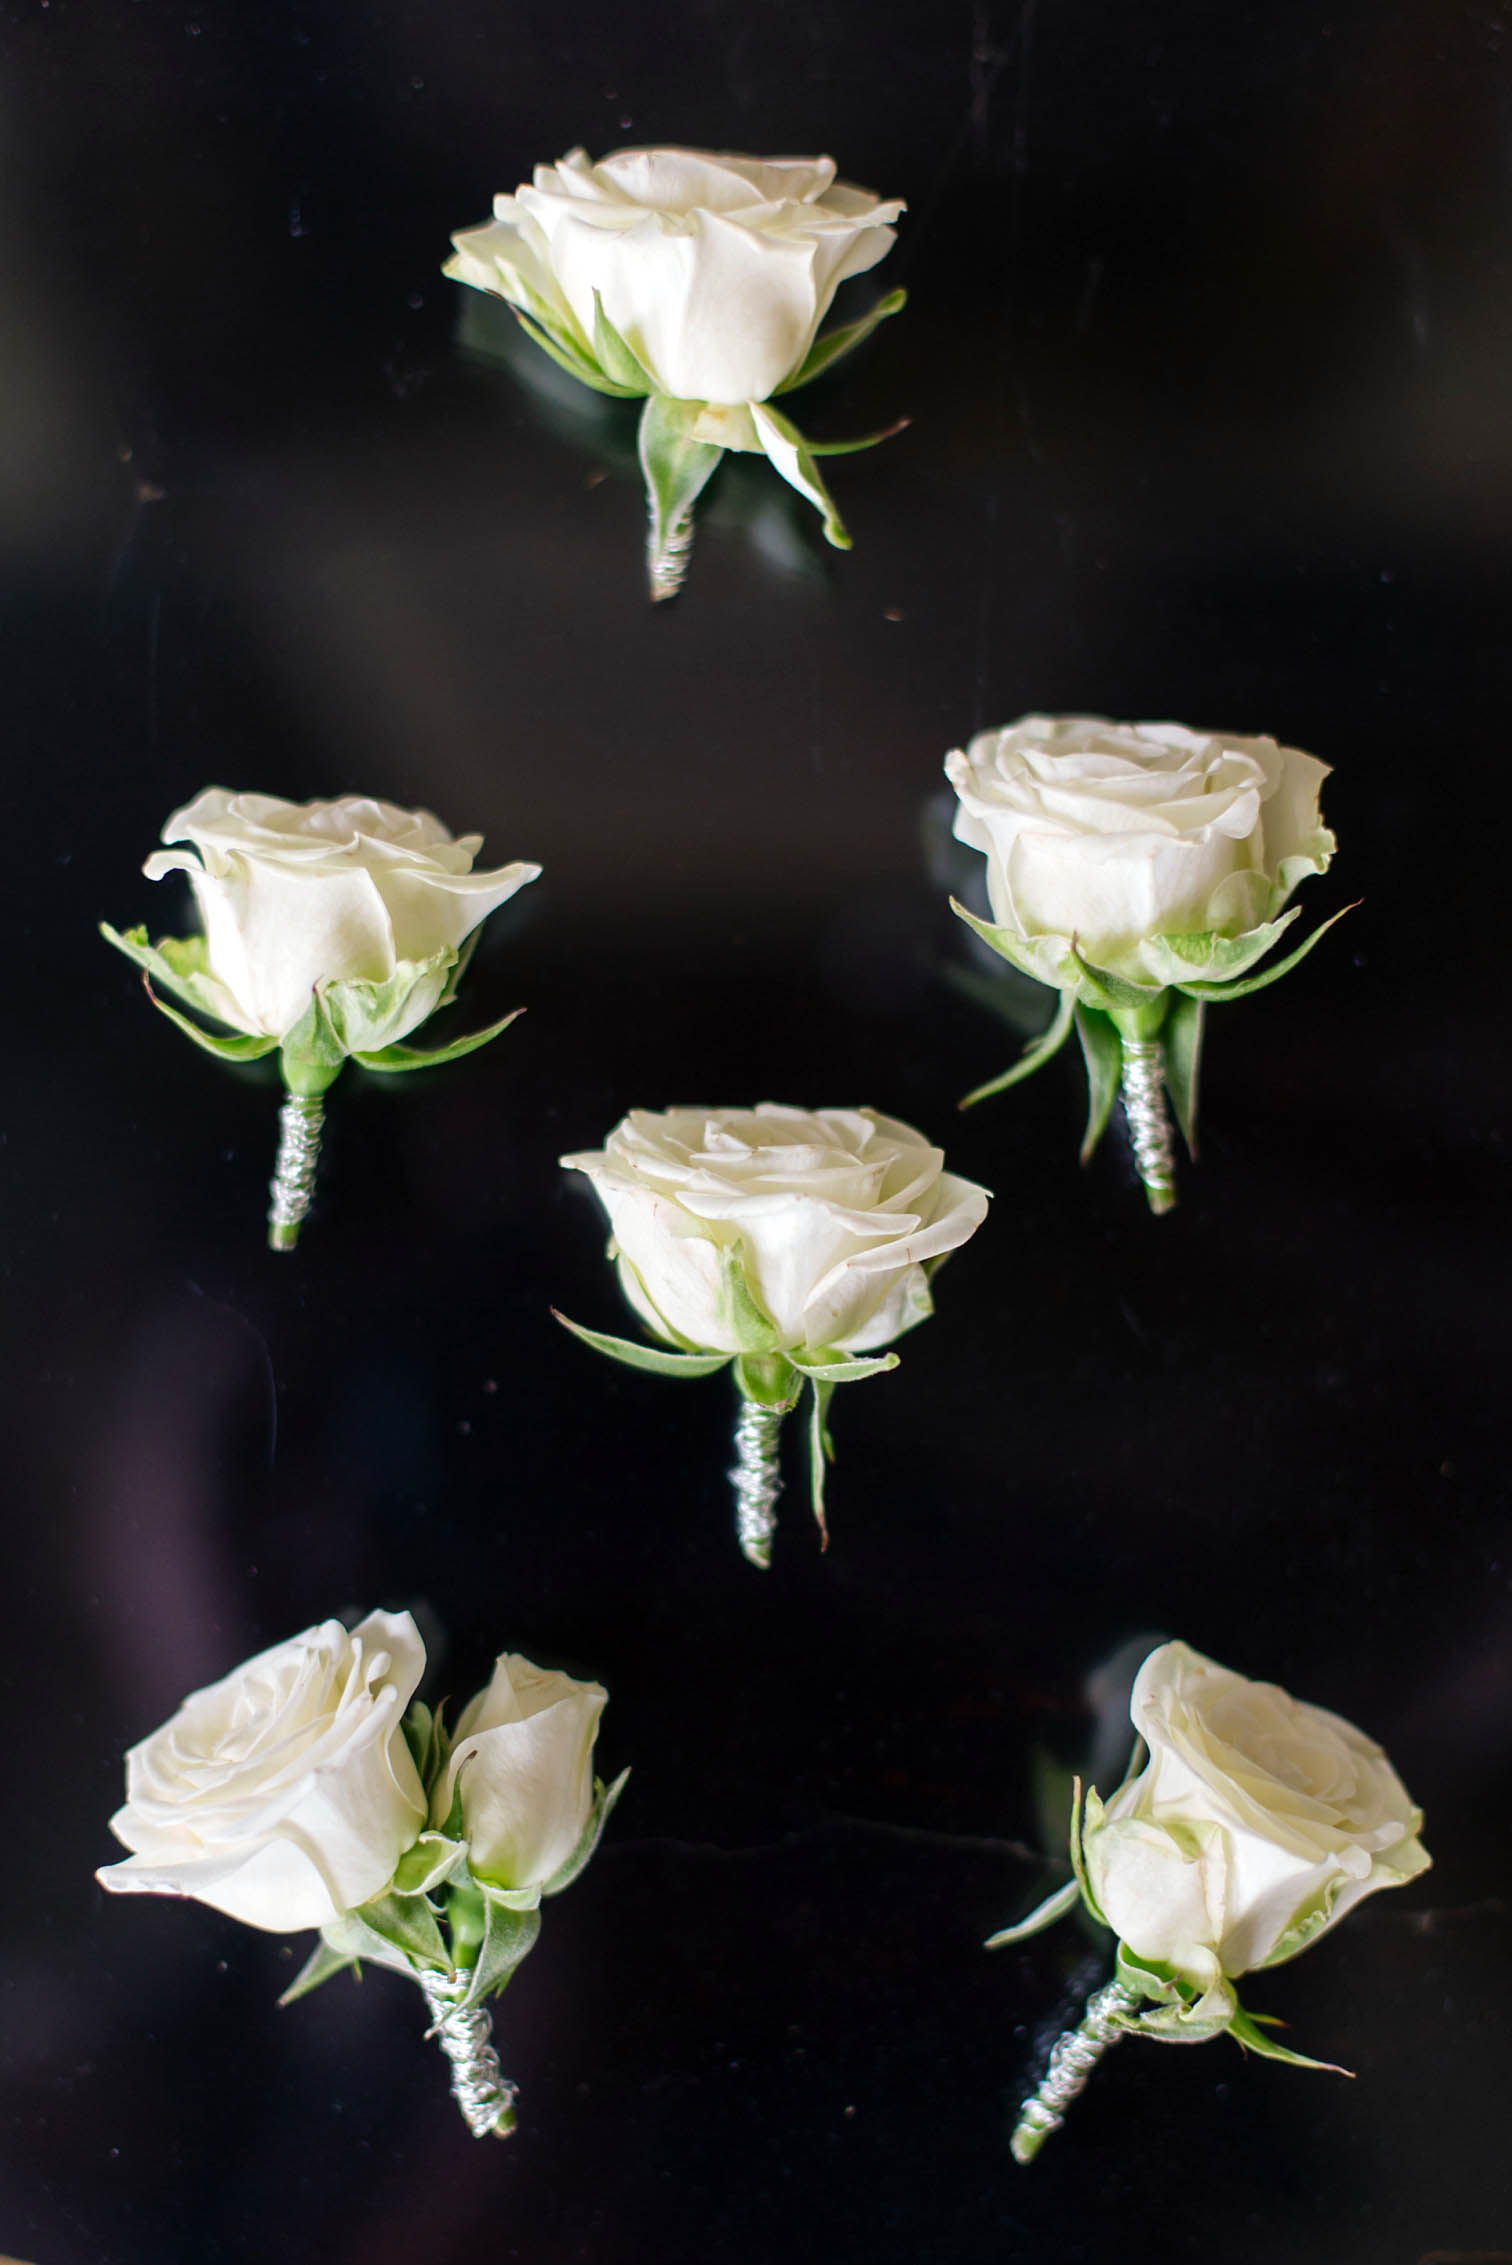 White Roses, Wedding Boutonniere Ideas, Lace Wedding Dress, Rolleiflex Camera, Mountain Weddings, Danielle DeFiore Photographer, Colorado Wedding Photographers, Castle Wedding, Classic Black tie Wedding, Film Photographer, Colorado Weddings